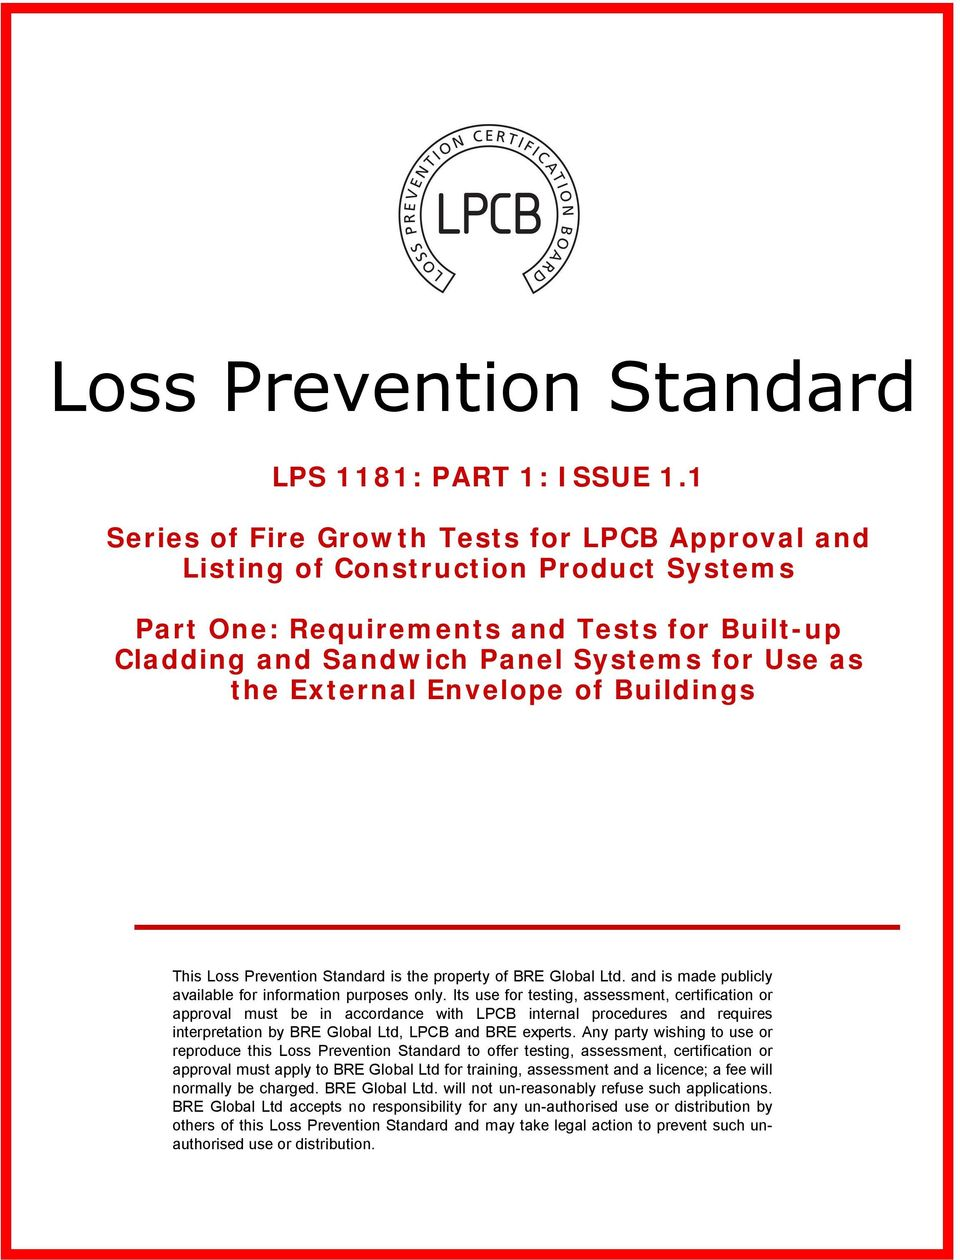 Envelope of Buildings This Loss Prevention Standard is the property of BRE Global Ltd. and is made publicly available for information purposes only.